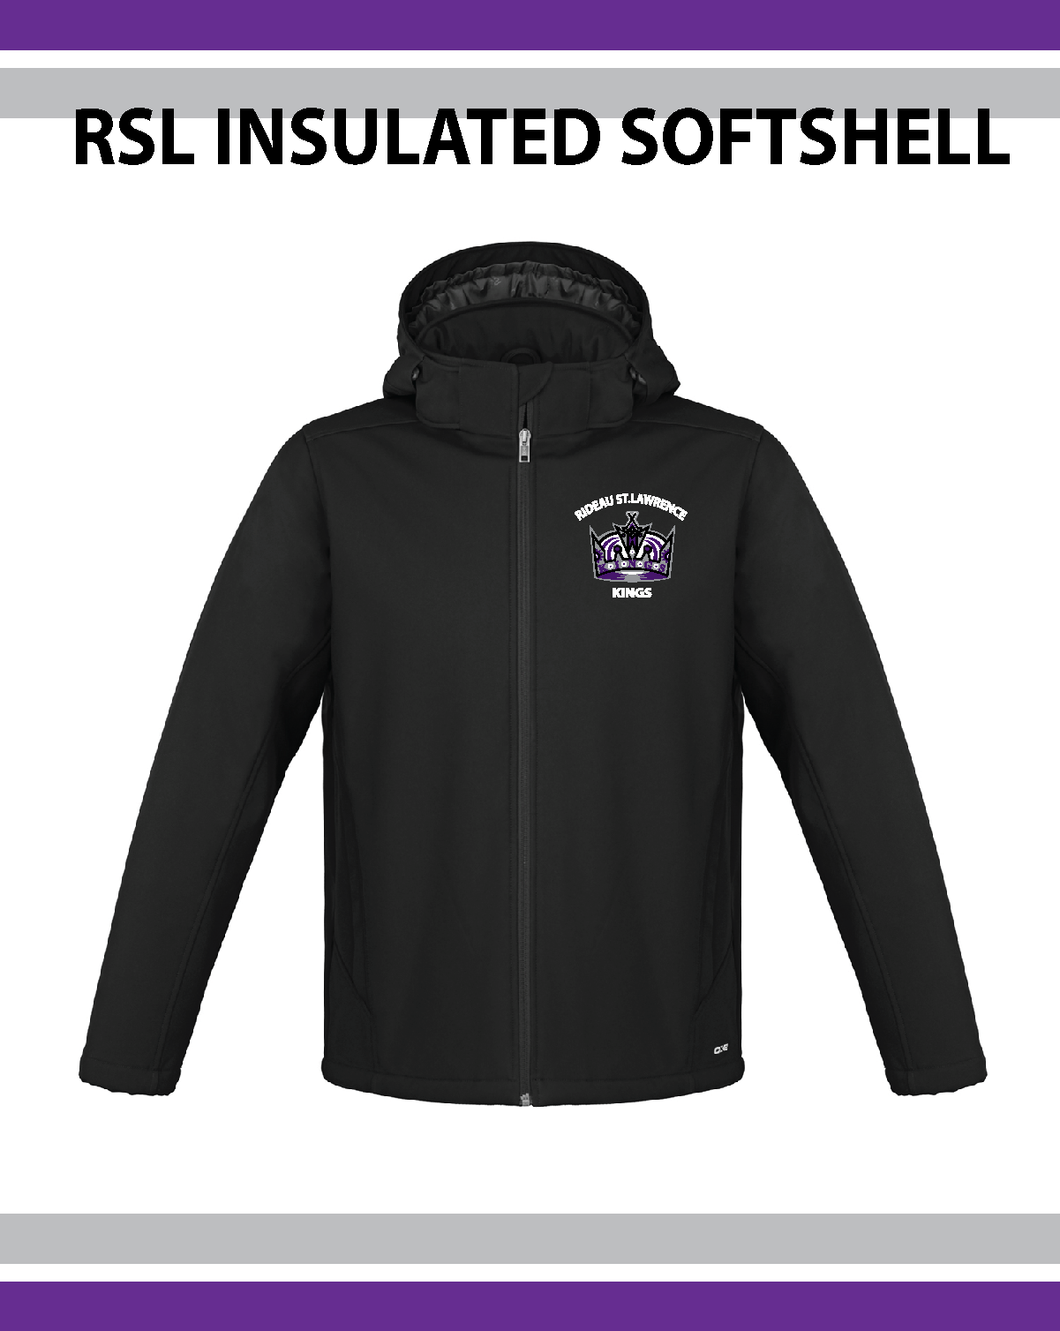 RSL Kings- Insulated Softshell Jacket